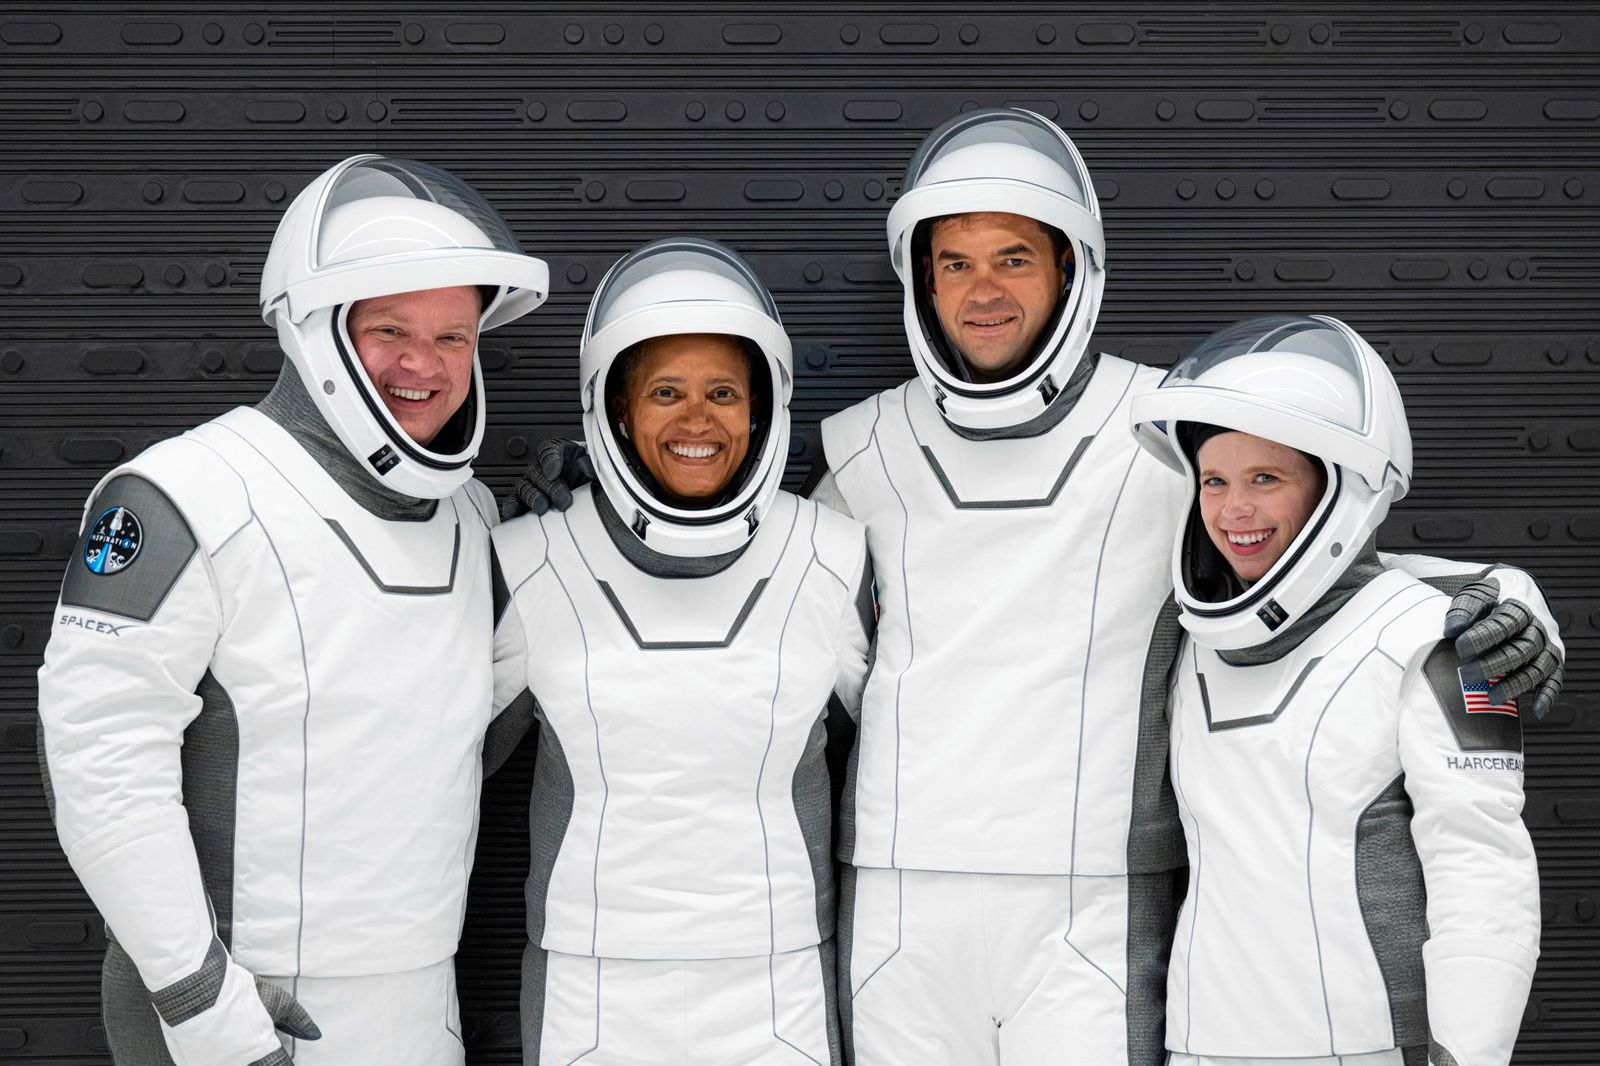 Weltraumtourismus: Inspiration4 - Suited up for launch rehearsal